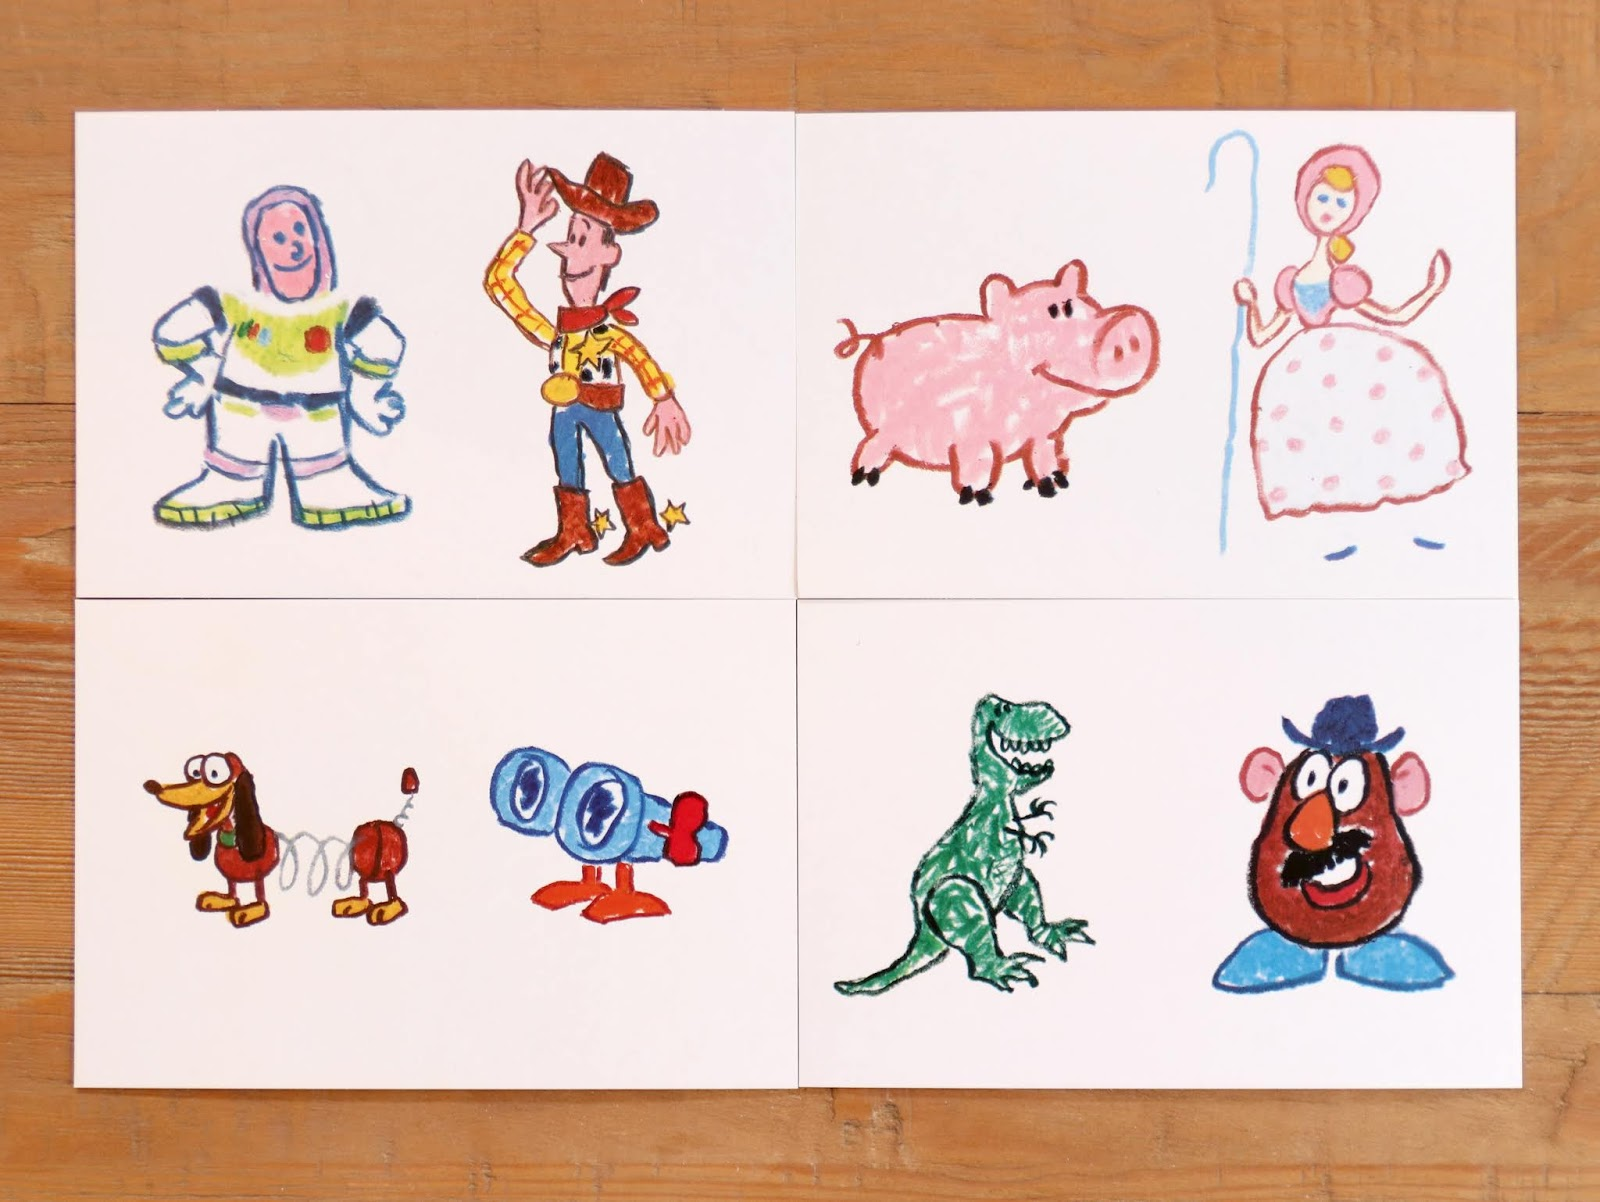 Toy Story Concept Art by Ralph Eggleston